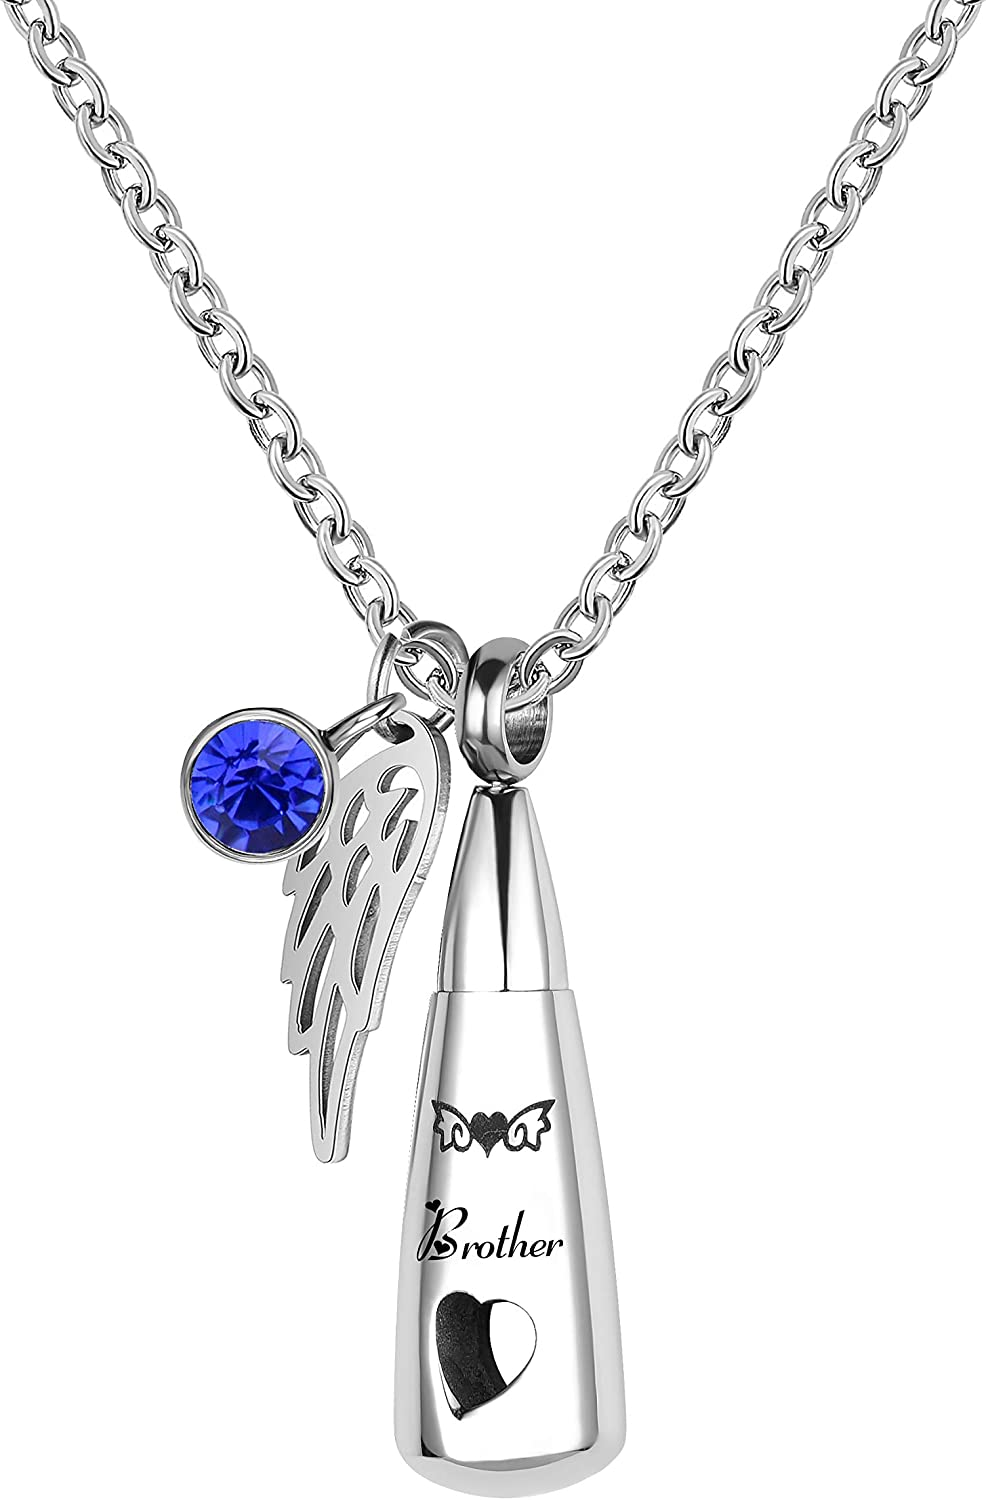 TCHYUN Cremation Urn Necklace Ashes Memorial Pendant Keepsake Stainless Steel Collection Death Love Heart Angel Wing Mom Cat Nana Dad Husband Wife Brother Aunt Daughter Grandma Grandpa Dog Mens Womens